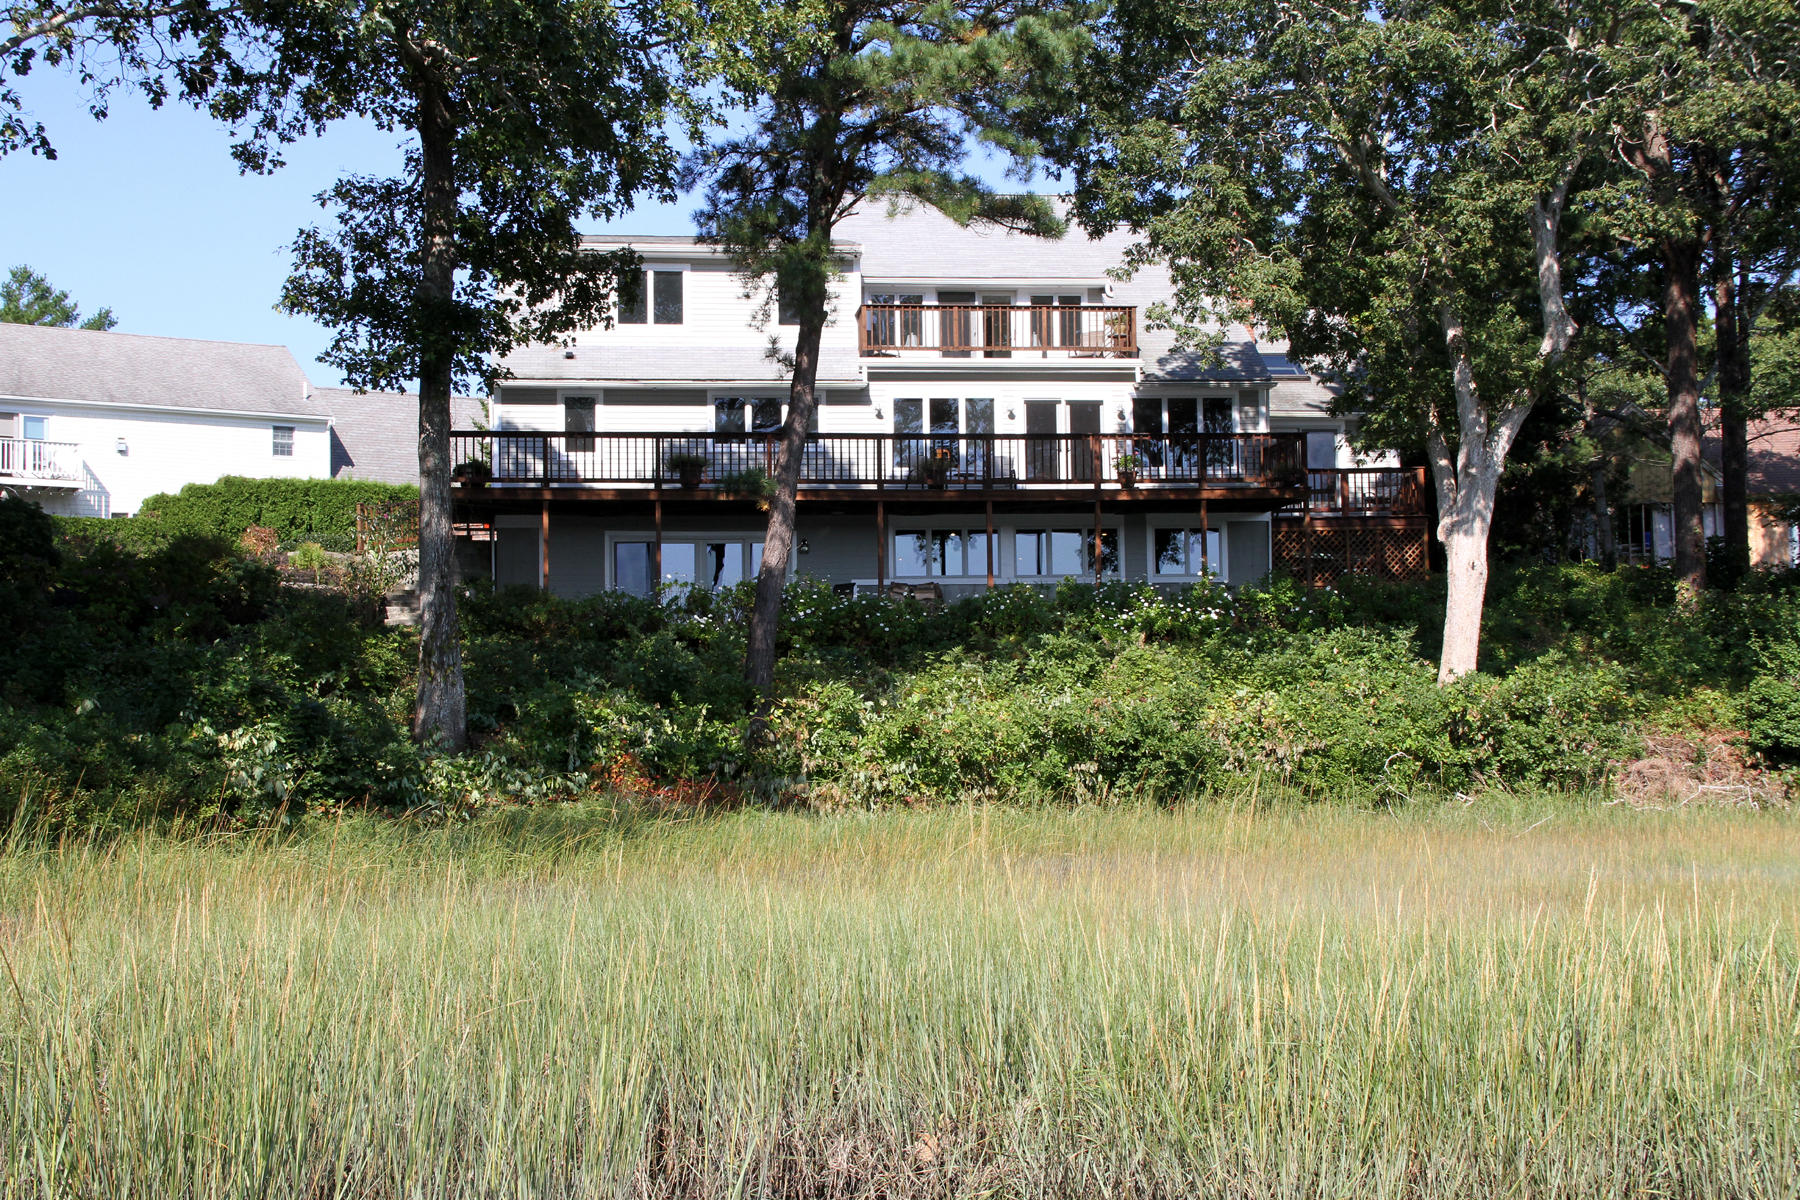 4-salt-river-lane-west-harwich-ma-02671